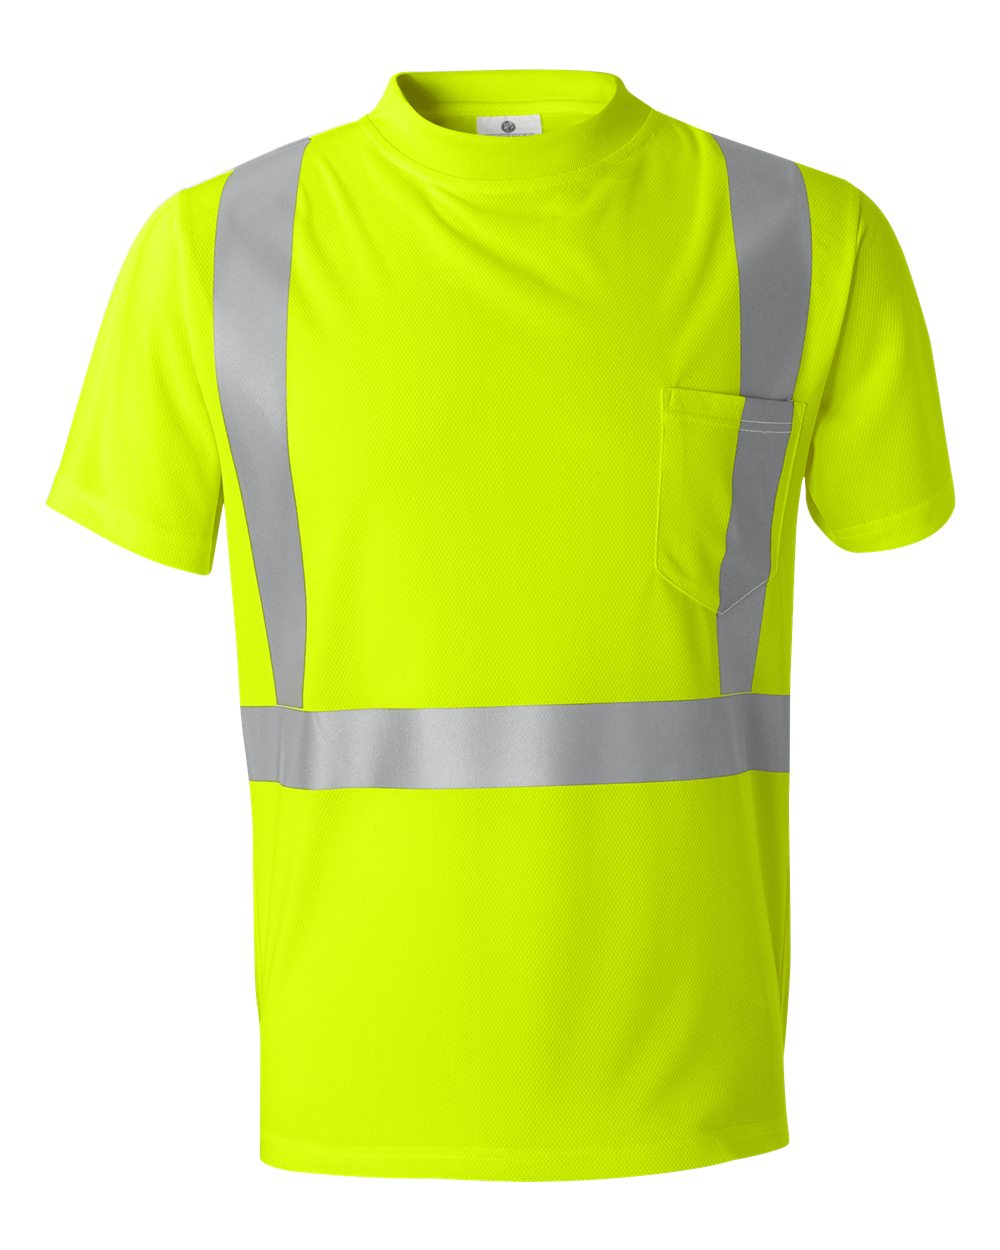 METHOD CHICAGO SCREEN PRINTING AND EMBROIDERY - CUSTOM PRINTED HIGH VISIBILITY SHORT SLEEVE SHIRT